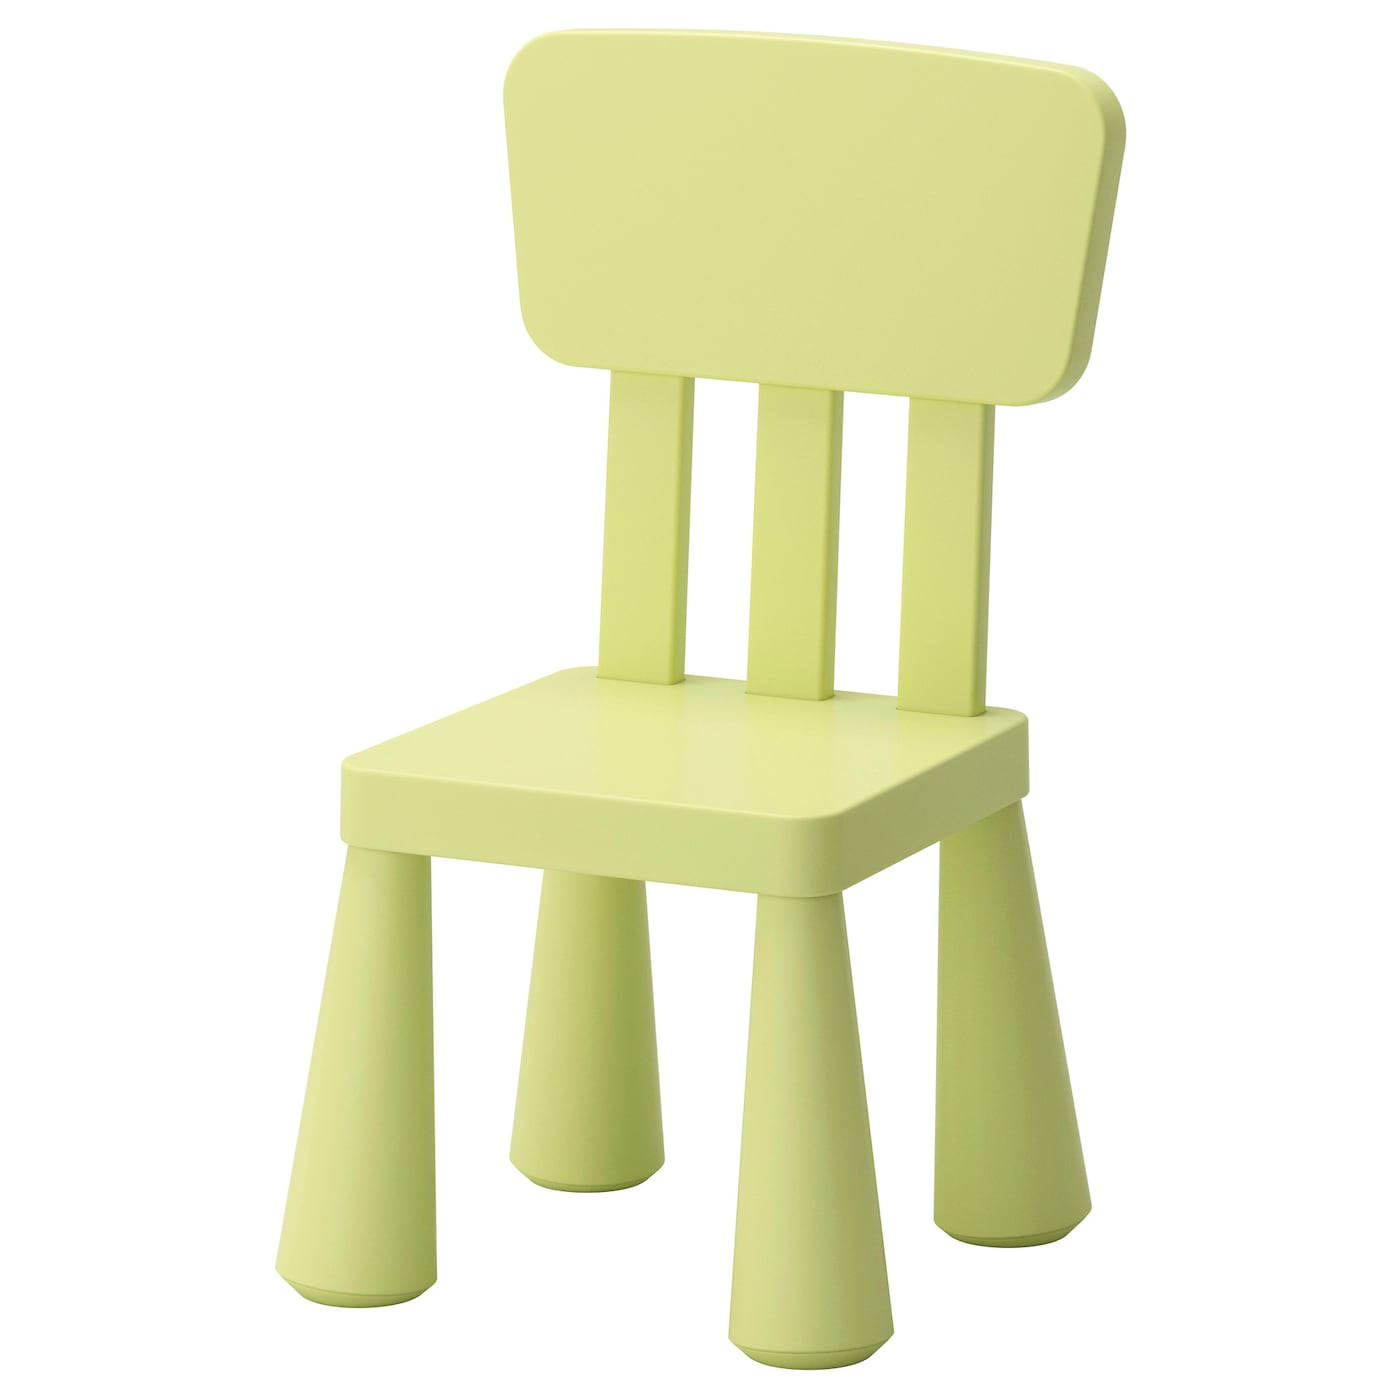 Mammut children 39 s chair in outdoor light green ikea for Kids furniture ikea